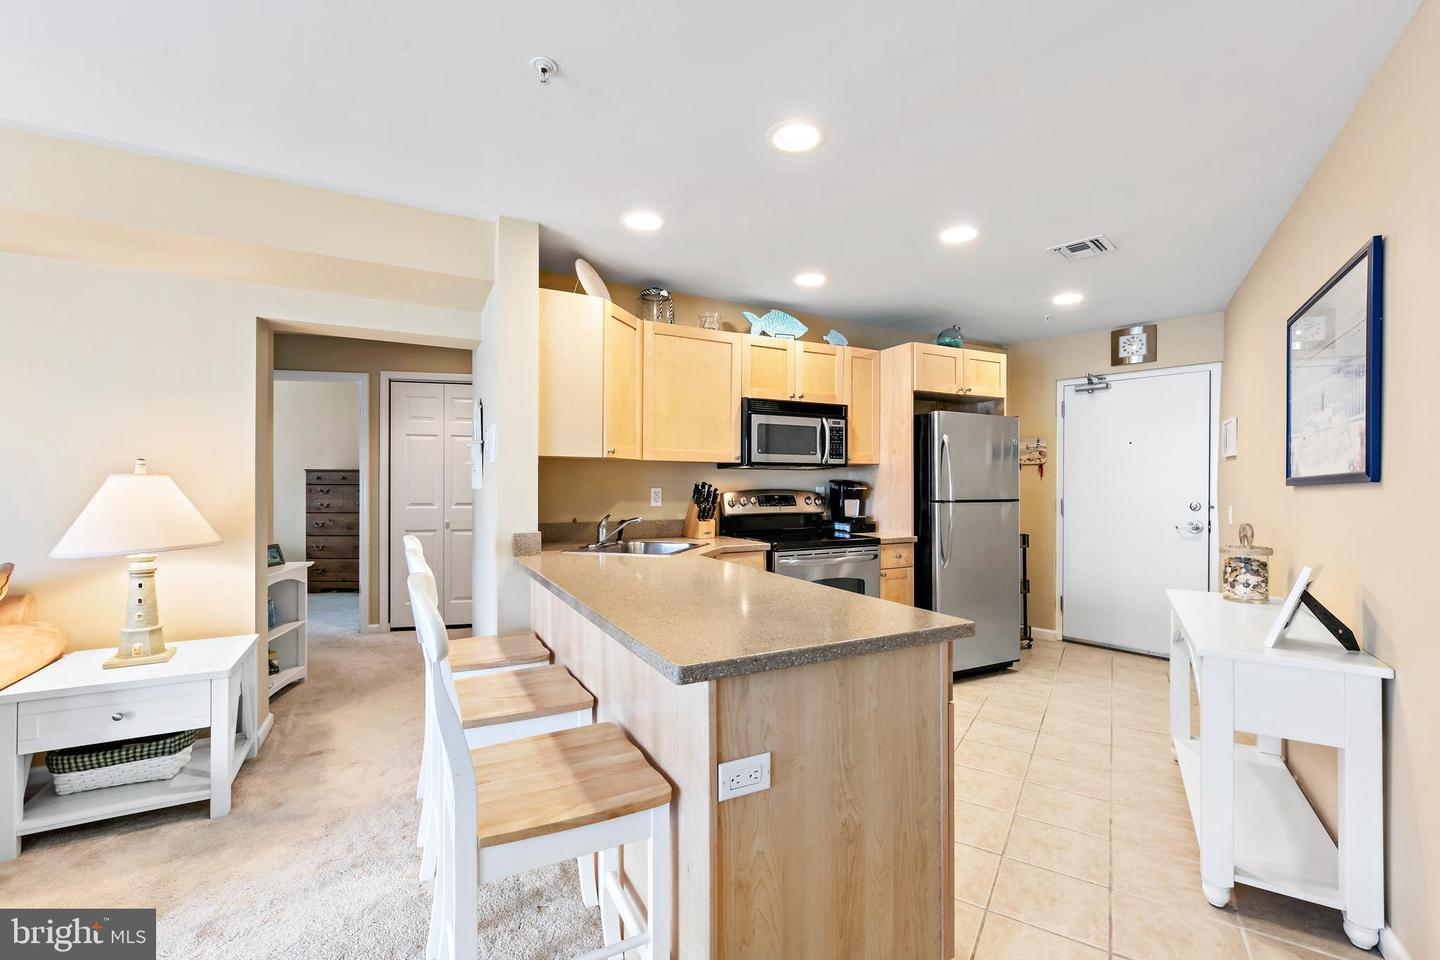 1810 CENTRAL AVE #2 - Picture 5